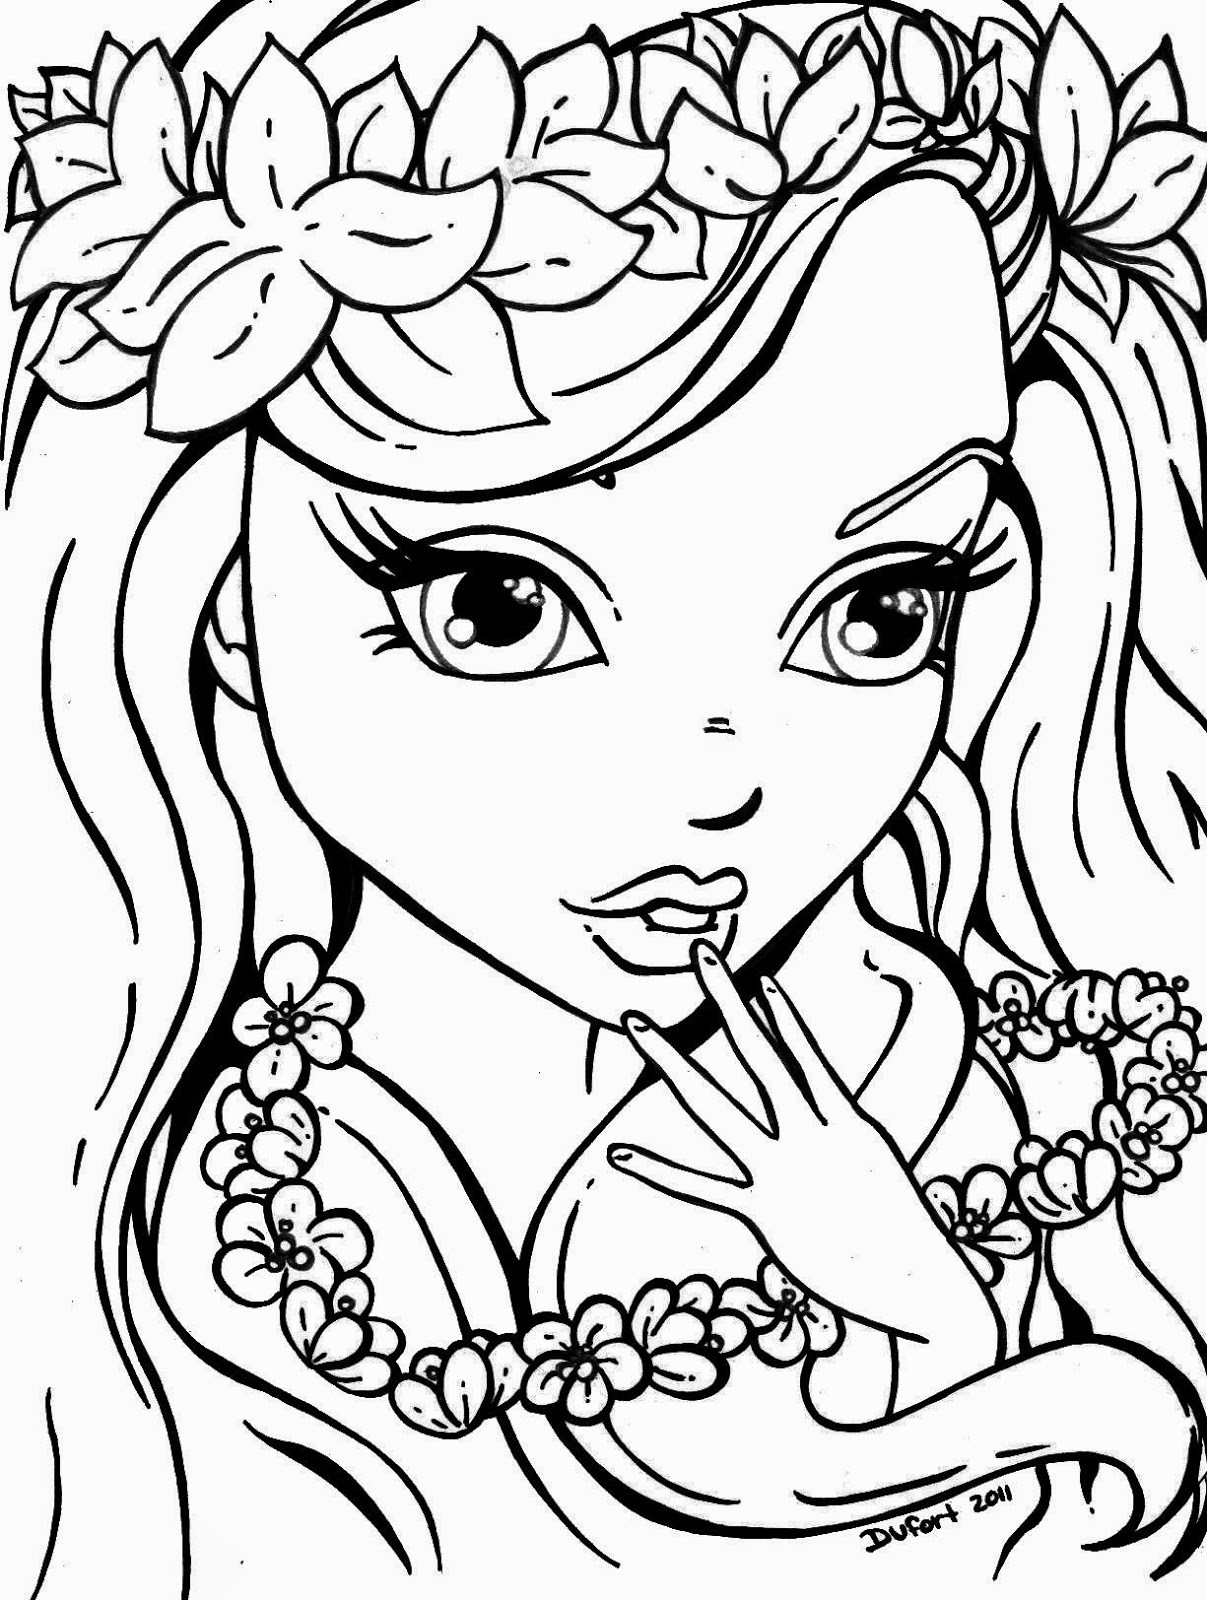 Free Printable Coloring Pages For Girls  Free Coloring Pages For Girls Cute Image 5 Gianfreda